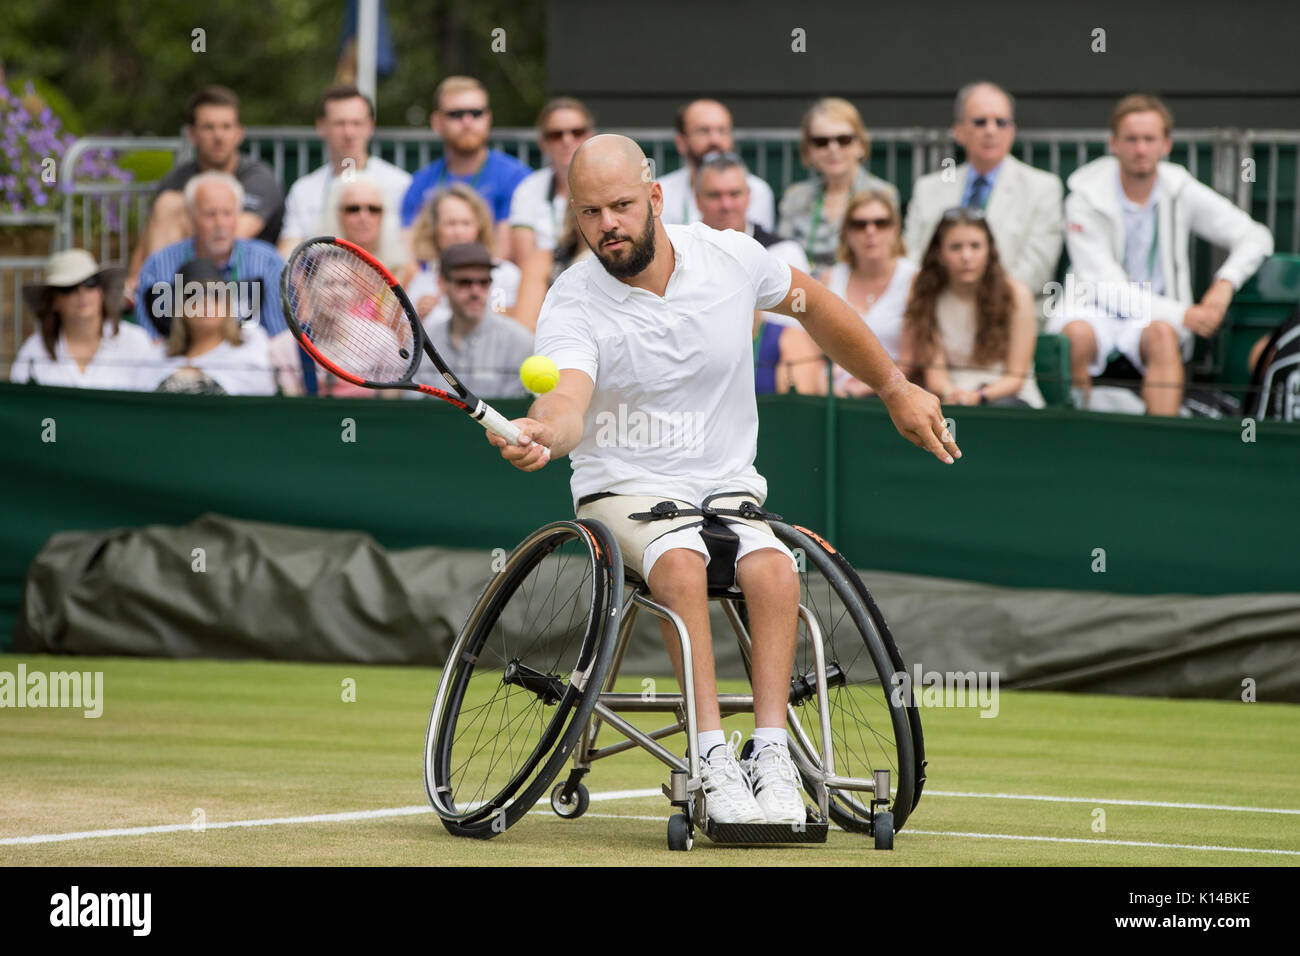 christian singles in wimbledon Wimbledon, qf (1938) christian boussus (5 march 1908 – august 2003) was a  left-handed french tennis player who found success in the 1920s and 1930s  contents 1 tennis career 2 playing style 3 personal life 4 grand slam finals  41 singles (1 runner-up) 42 doubles (1 runner-up) 43 mixed doubles (1.